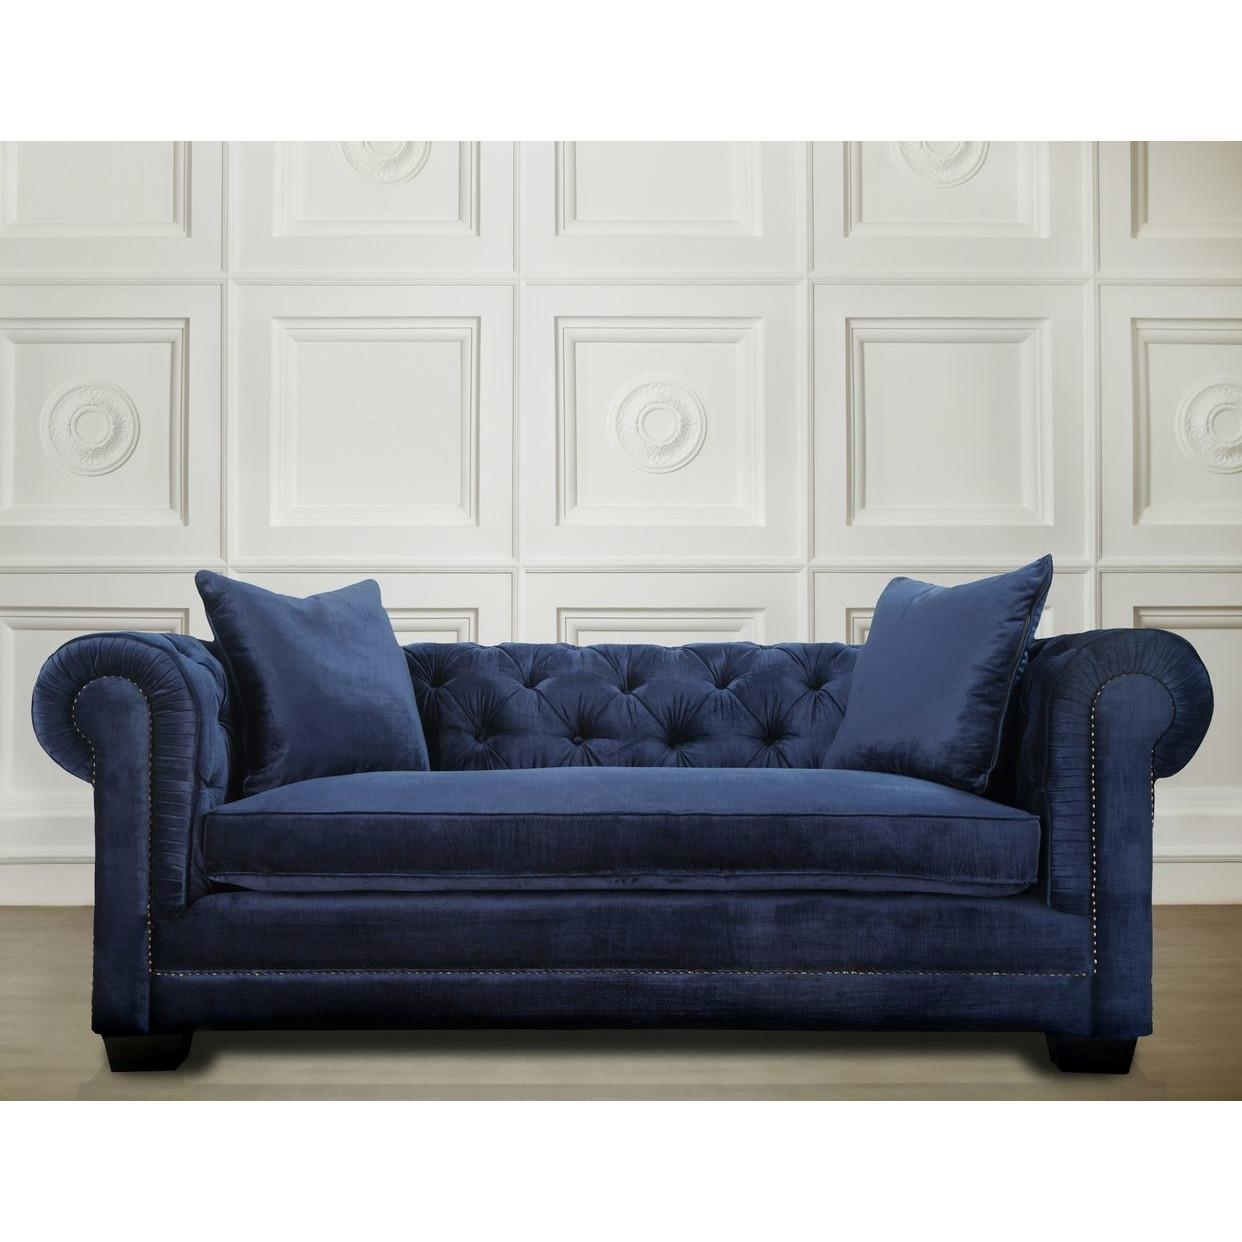 Furniture: Broyhill Sofas | Broyhill Reclining Sofas | Broyhill Sofa With Regard To Broyhill Perspectives Sofas (Image 17 of 20)